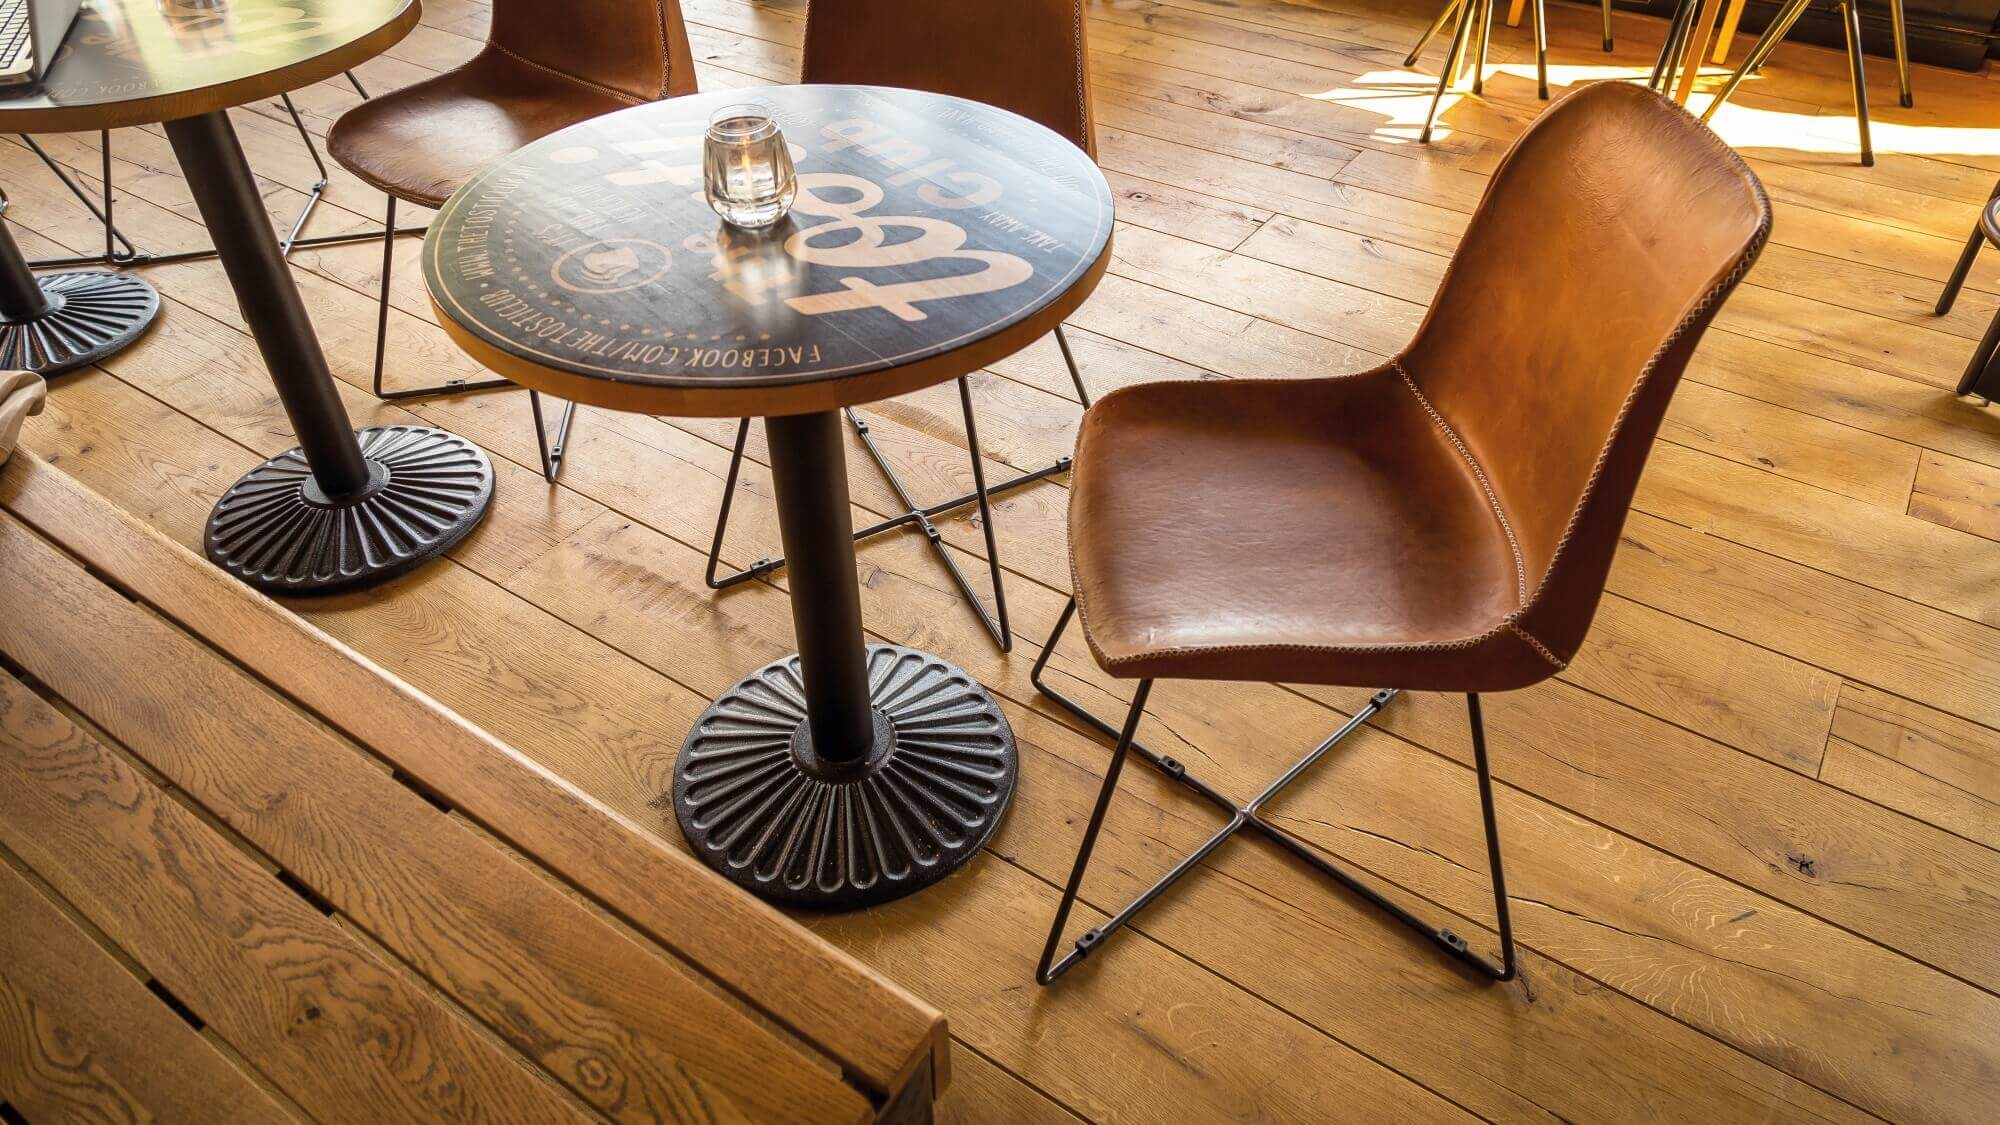 A small table with a leather chair at it on an aged oak floor.